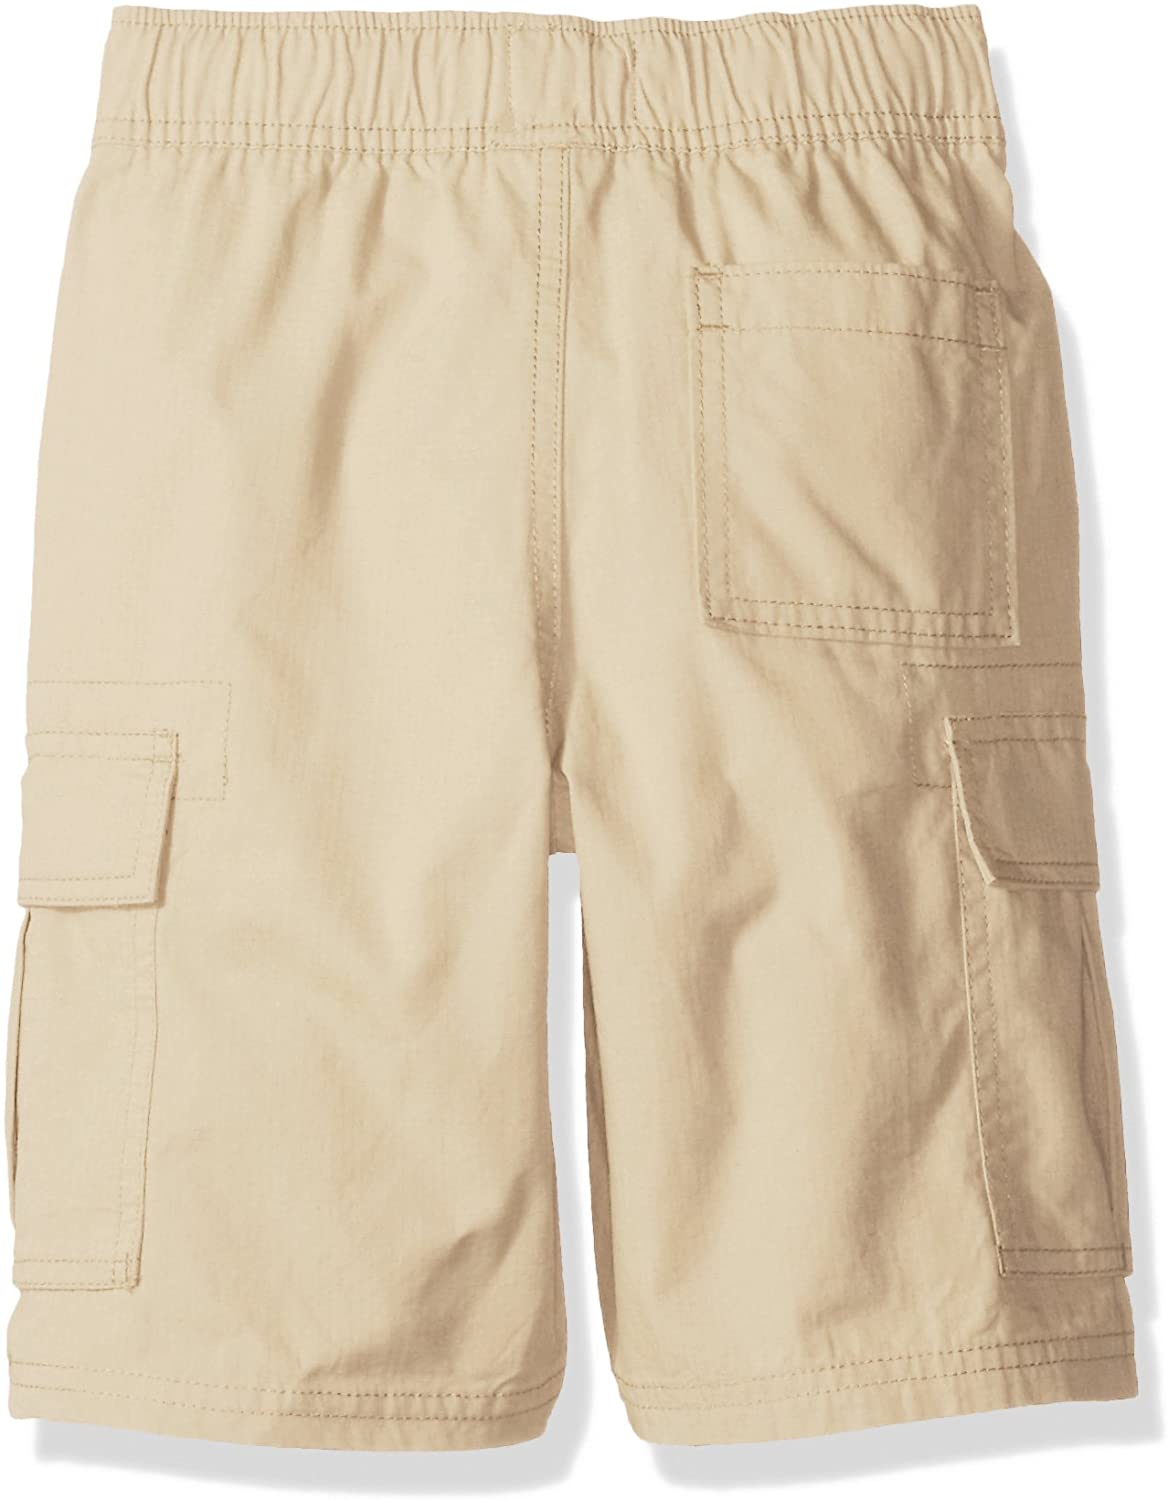 The Childrens Place Boys Pull-on Cargo Shorts